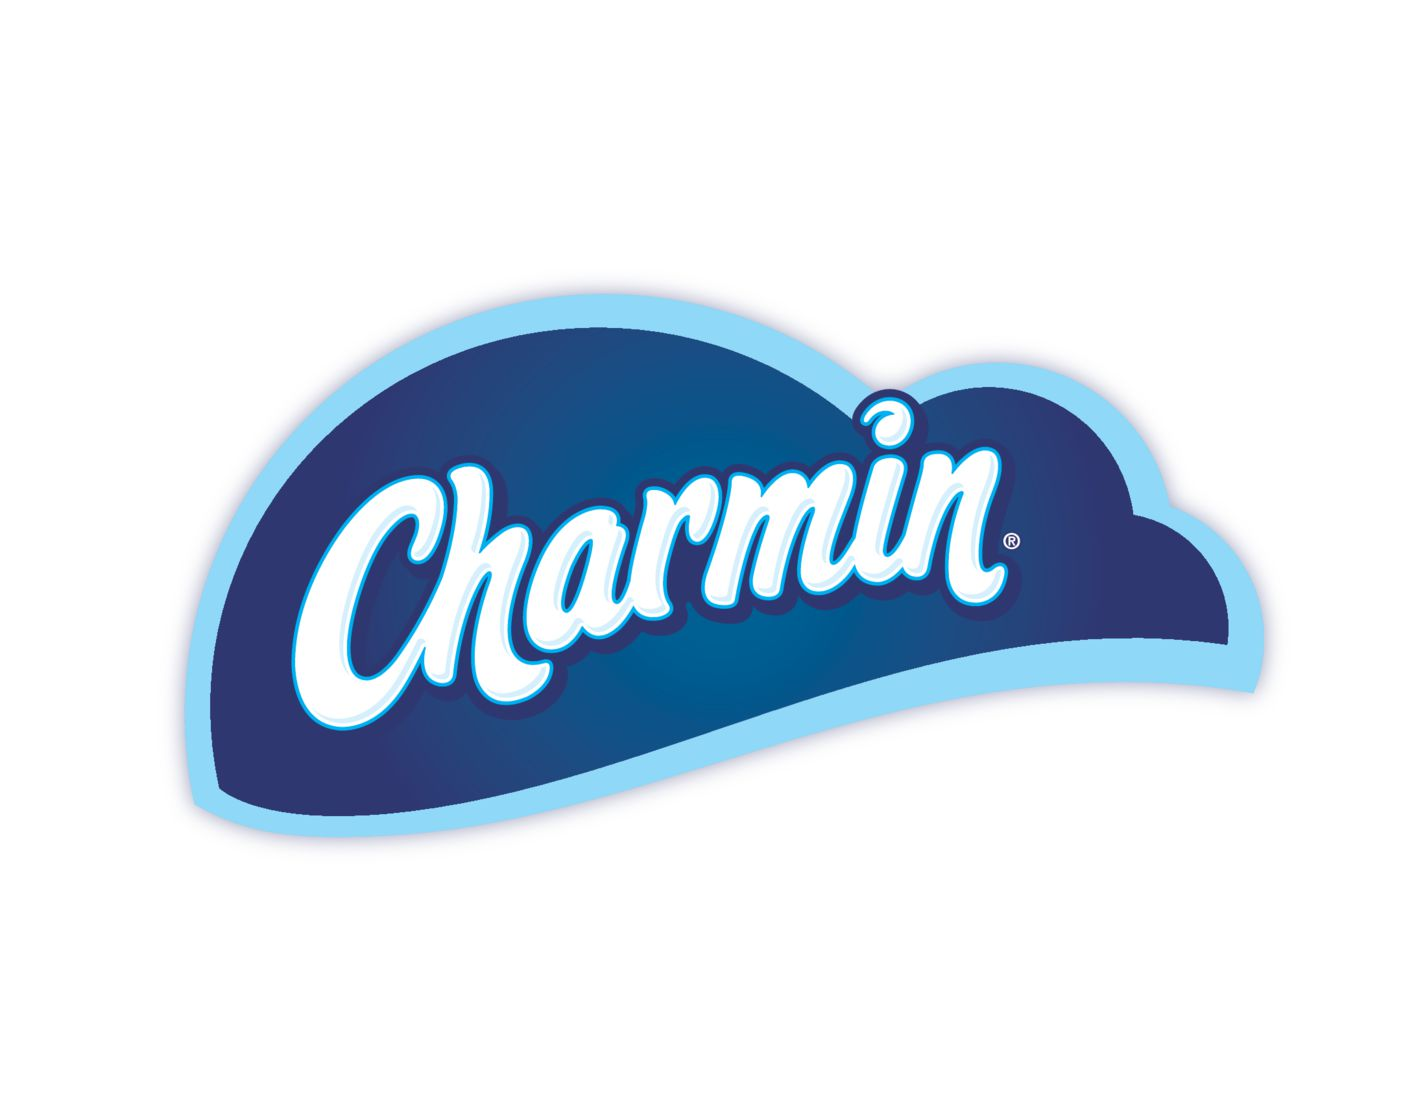 graphic regarding Charmin Coupons Printable identified as Charmin Discount coupons - The Krazy Coupon Woman